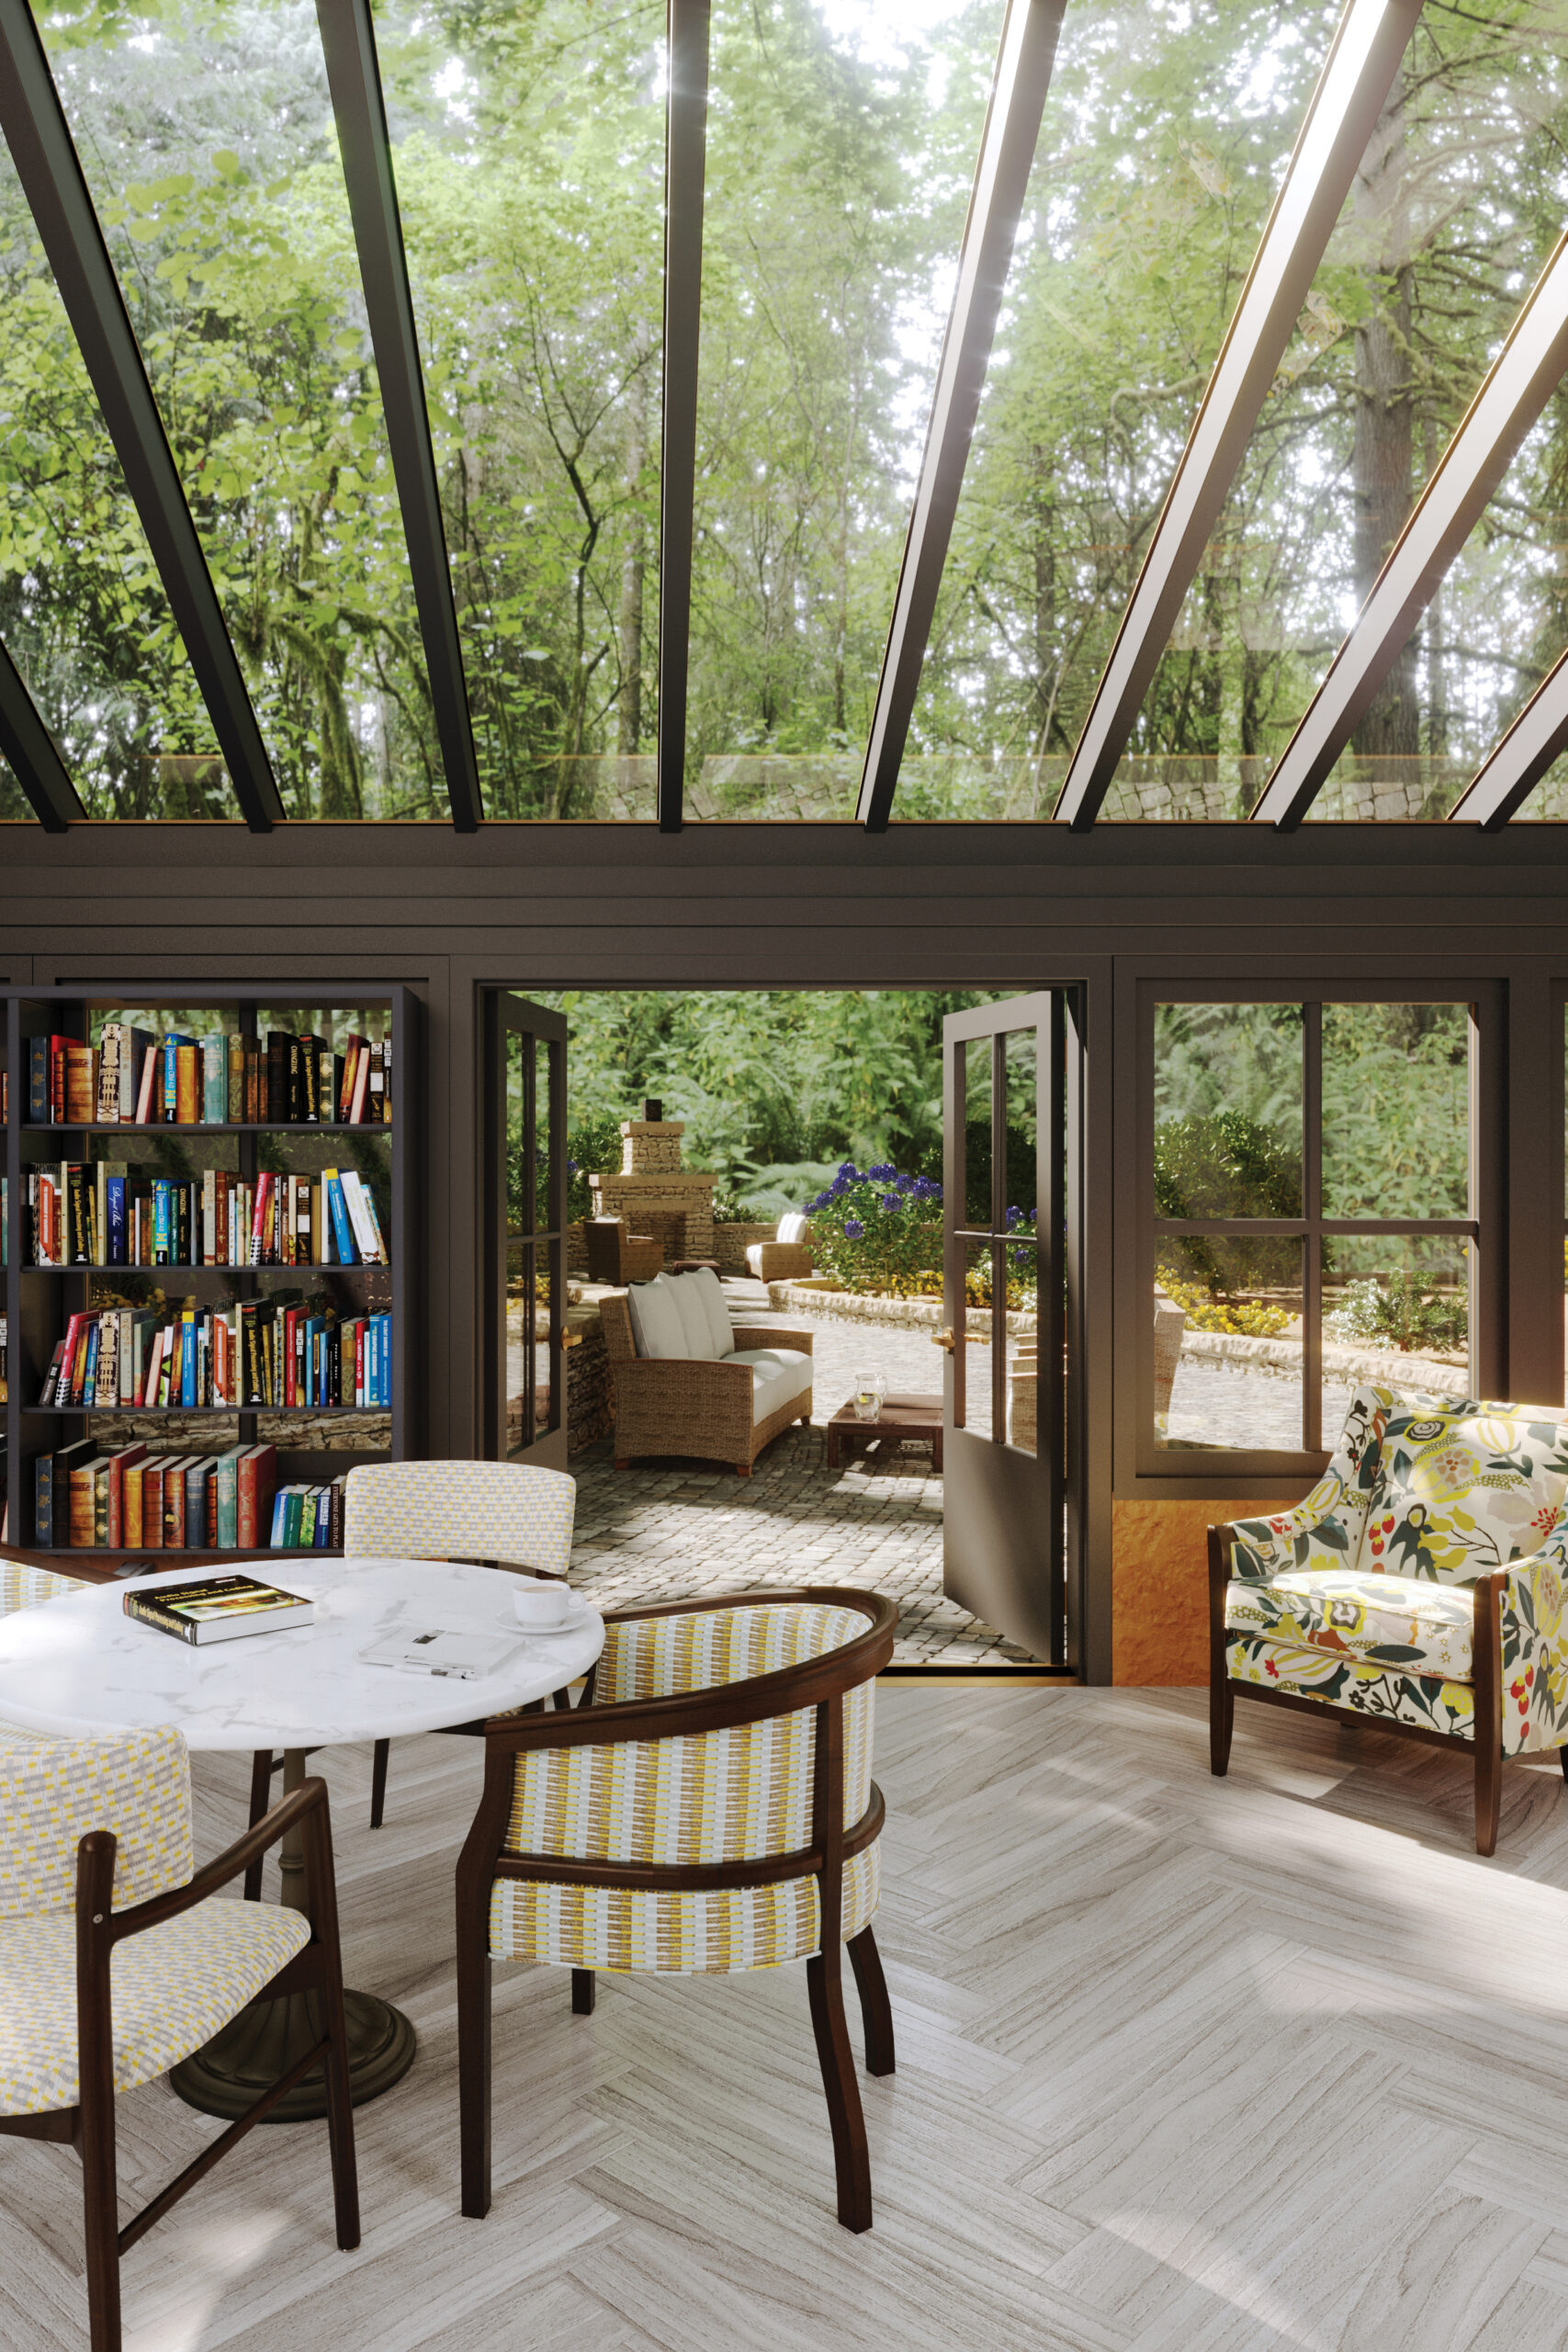 Sun room library with white table and chairs